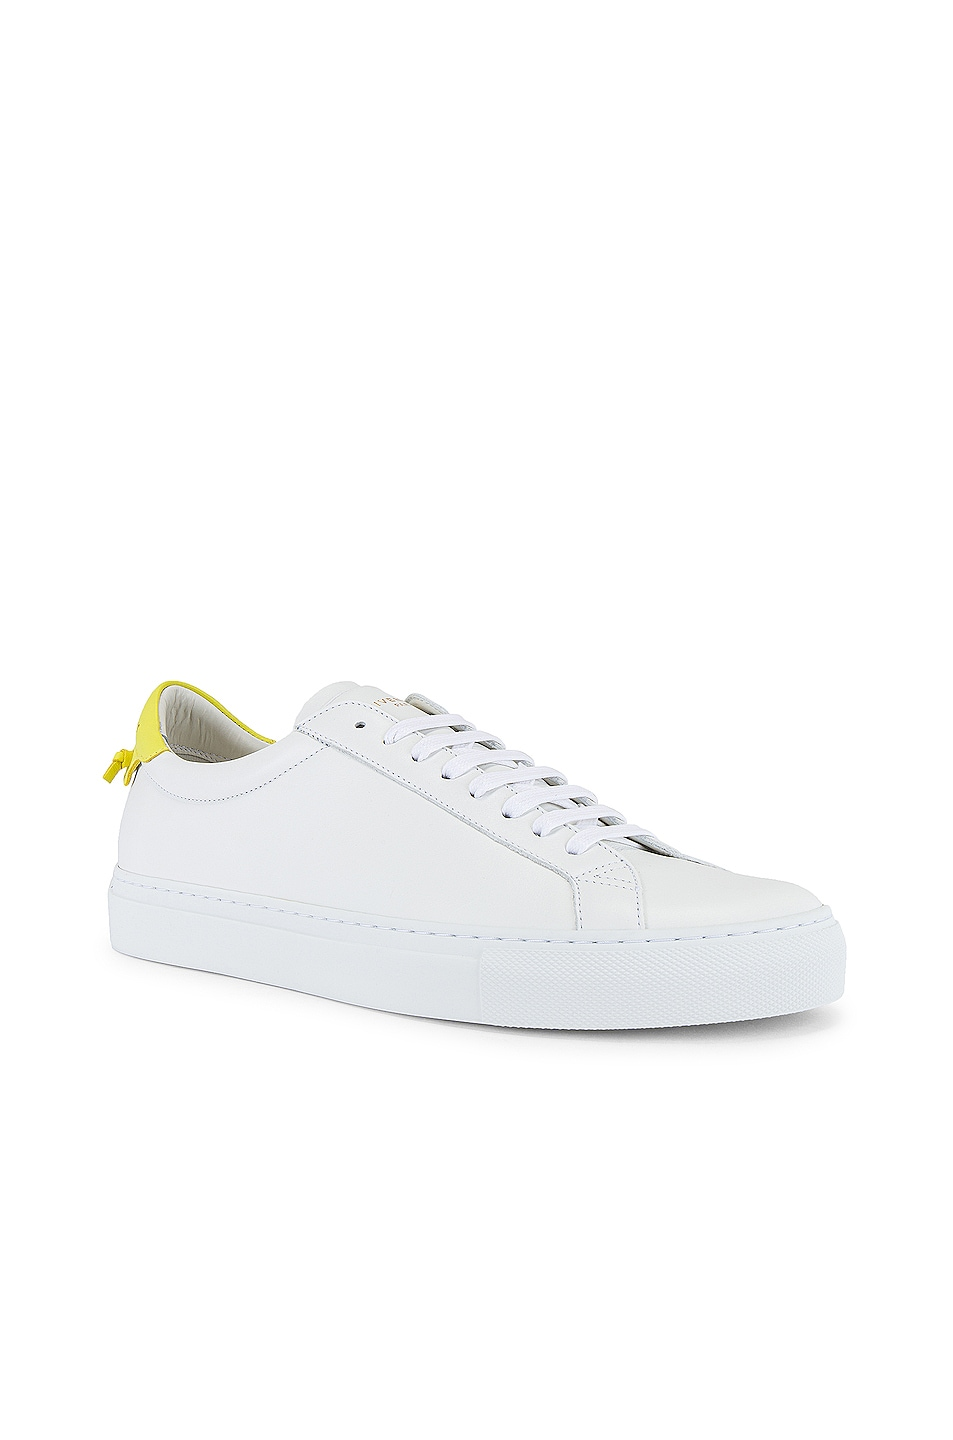 Image 1 of Givenchy Urban Street Low Sneaker in White & Yellow